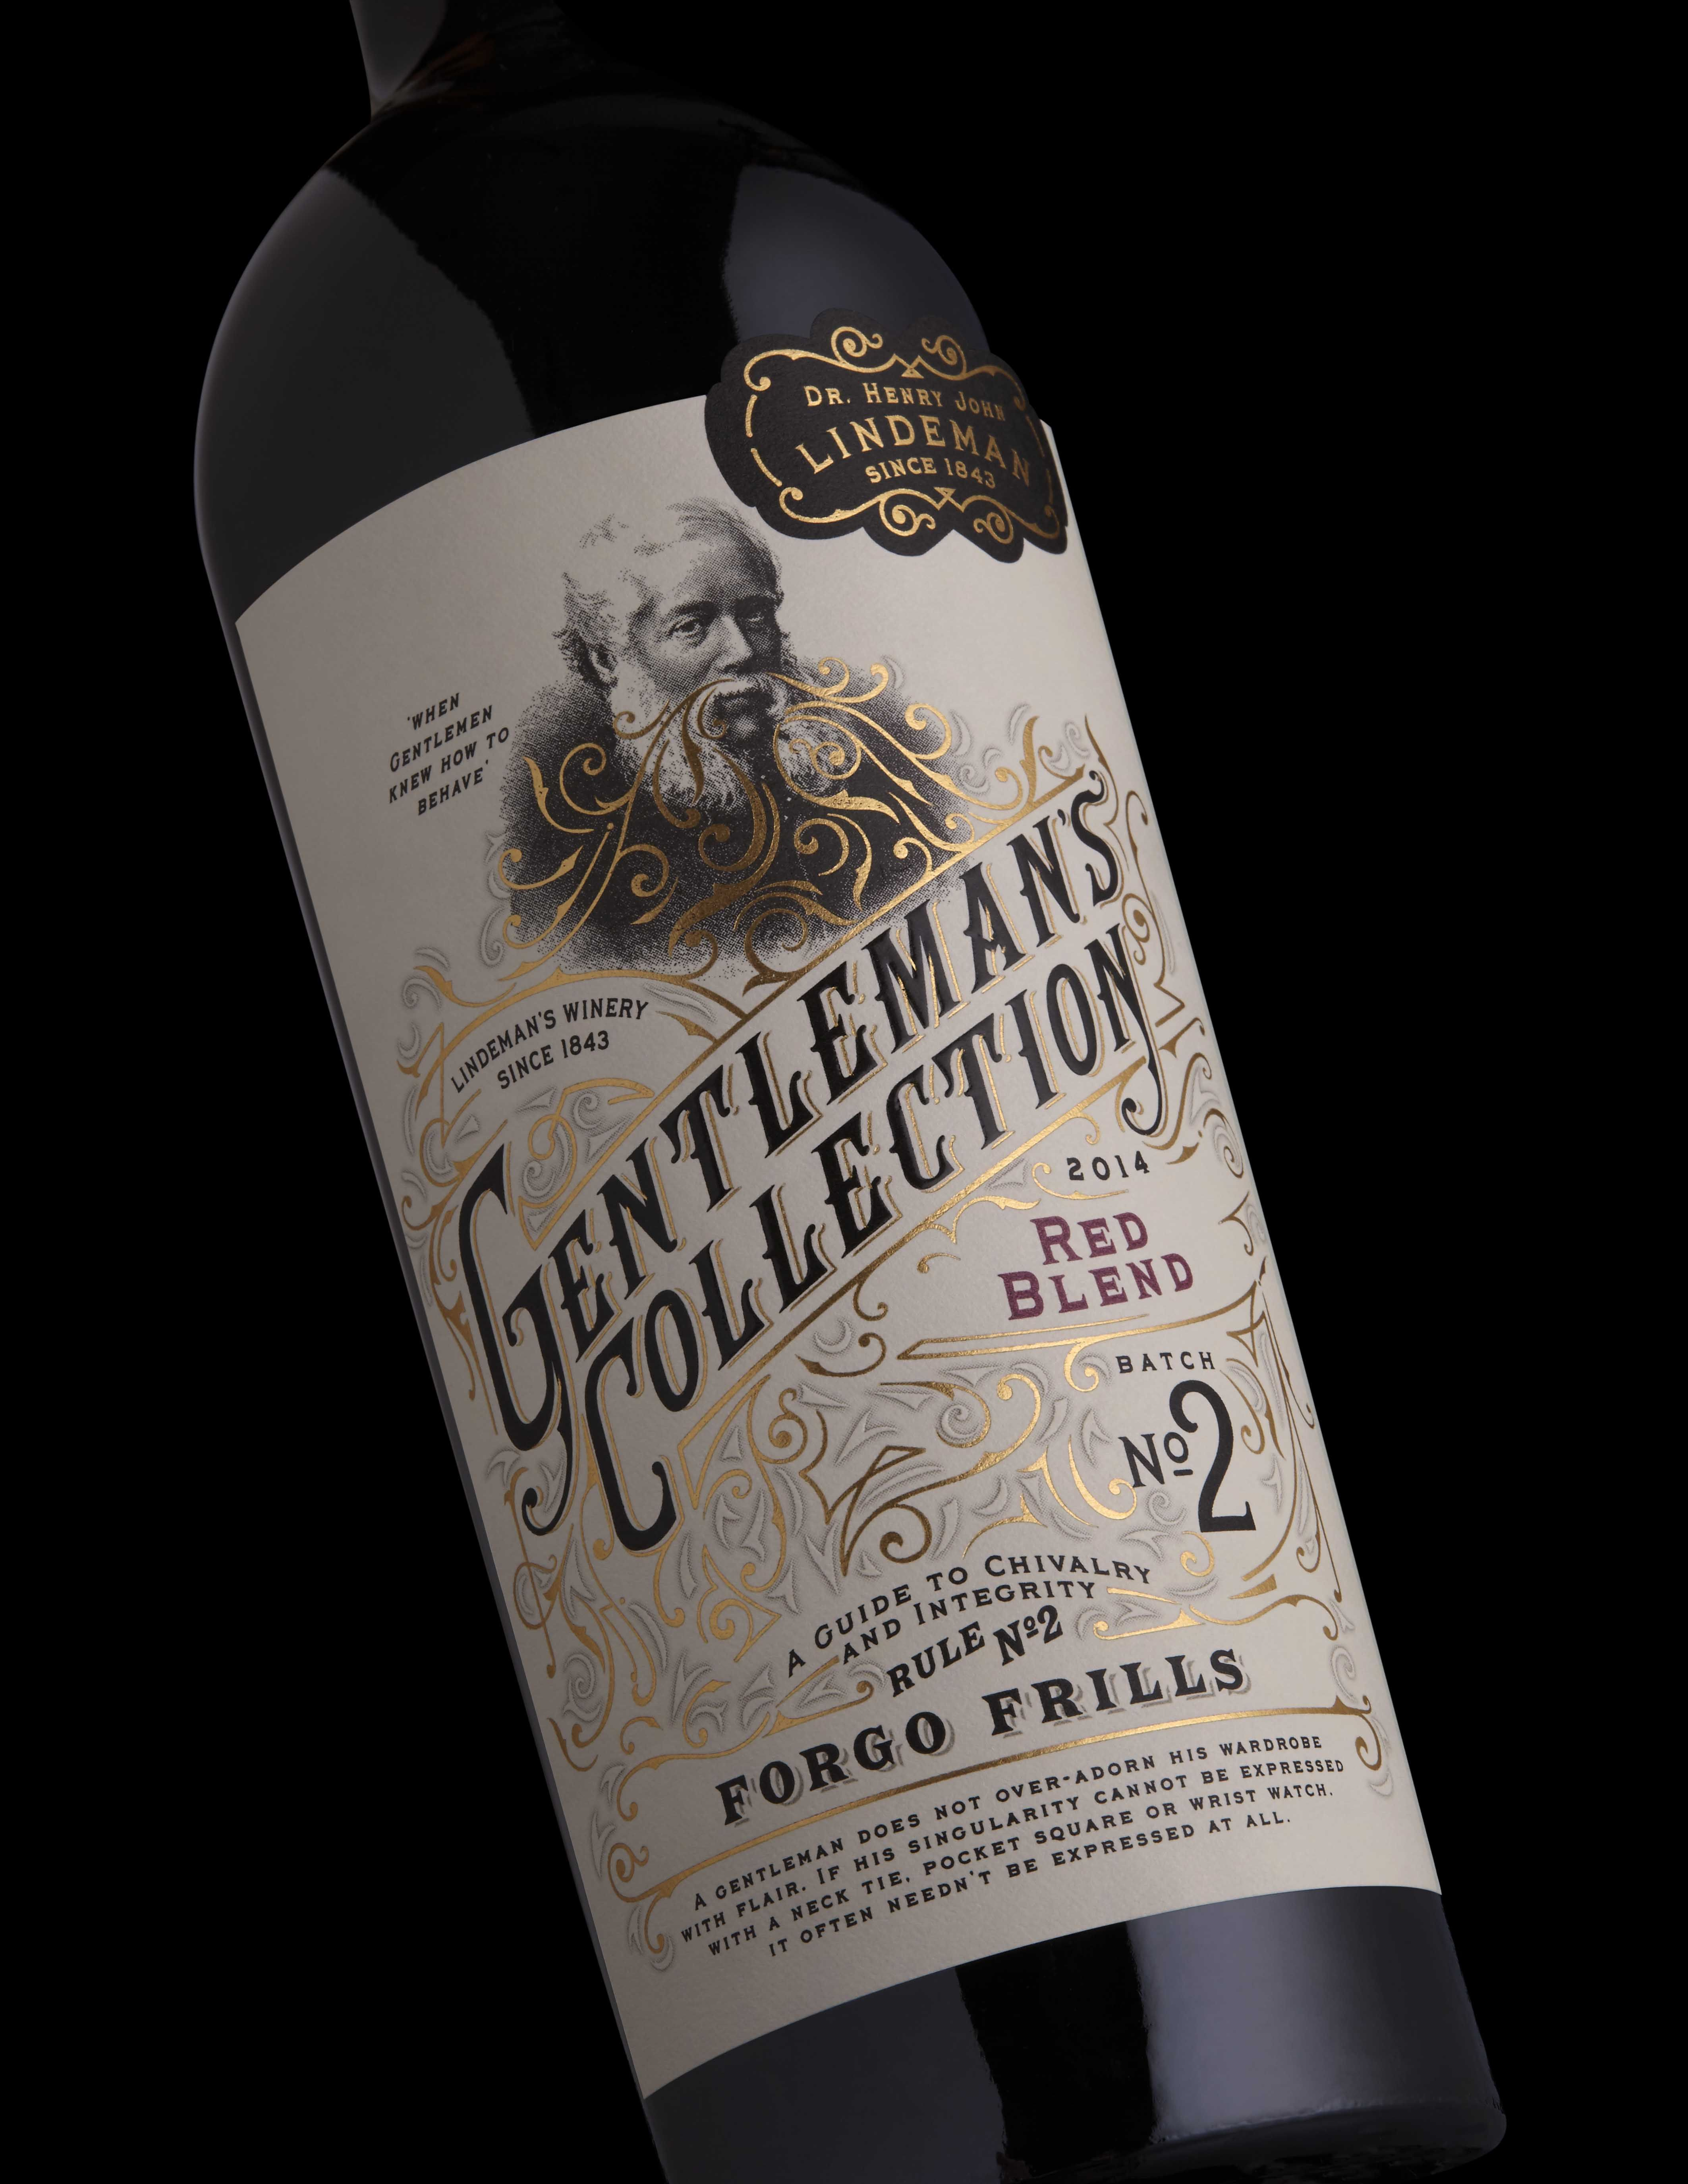 Gentleman S Collection No 1 And 2 Graphis Bottle Label Design Wine Bottle Label Design Wine Label Design